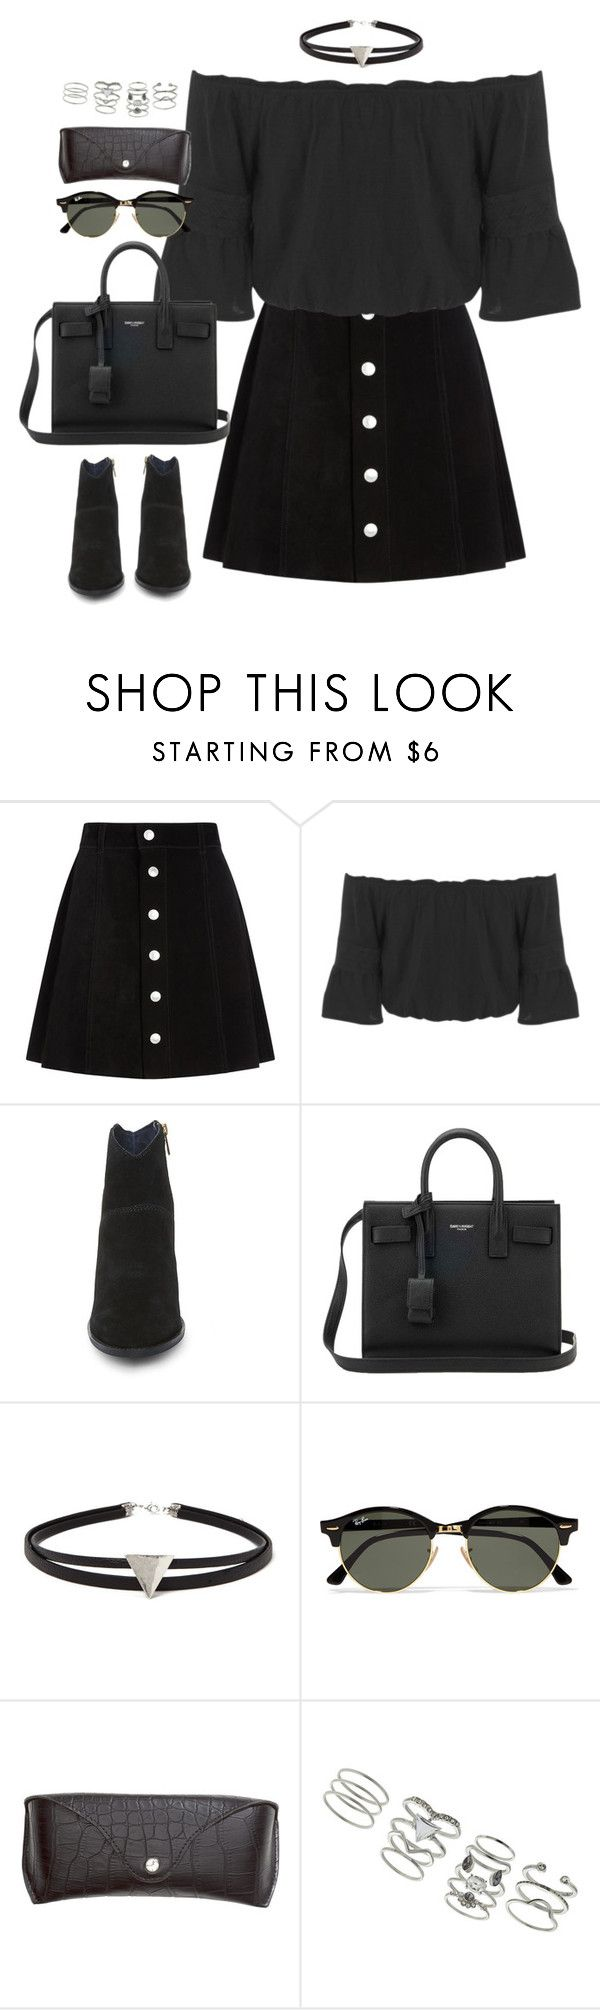 """Untitled#4410"" by fashionnfacts ❤ liked on Polyvore featuring AG Adriano Goldschmied, Miss Selfridge, Steve Madden, Yves Saint Laurent, Forever 21, Ray-Ban and H&M"